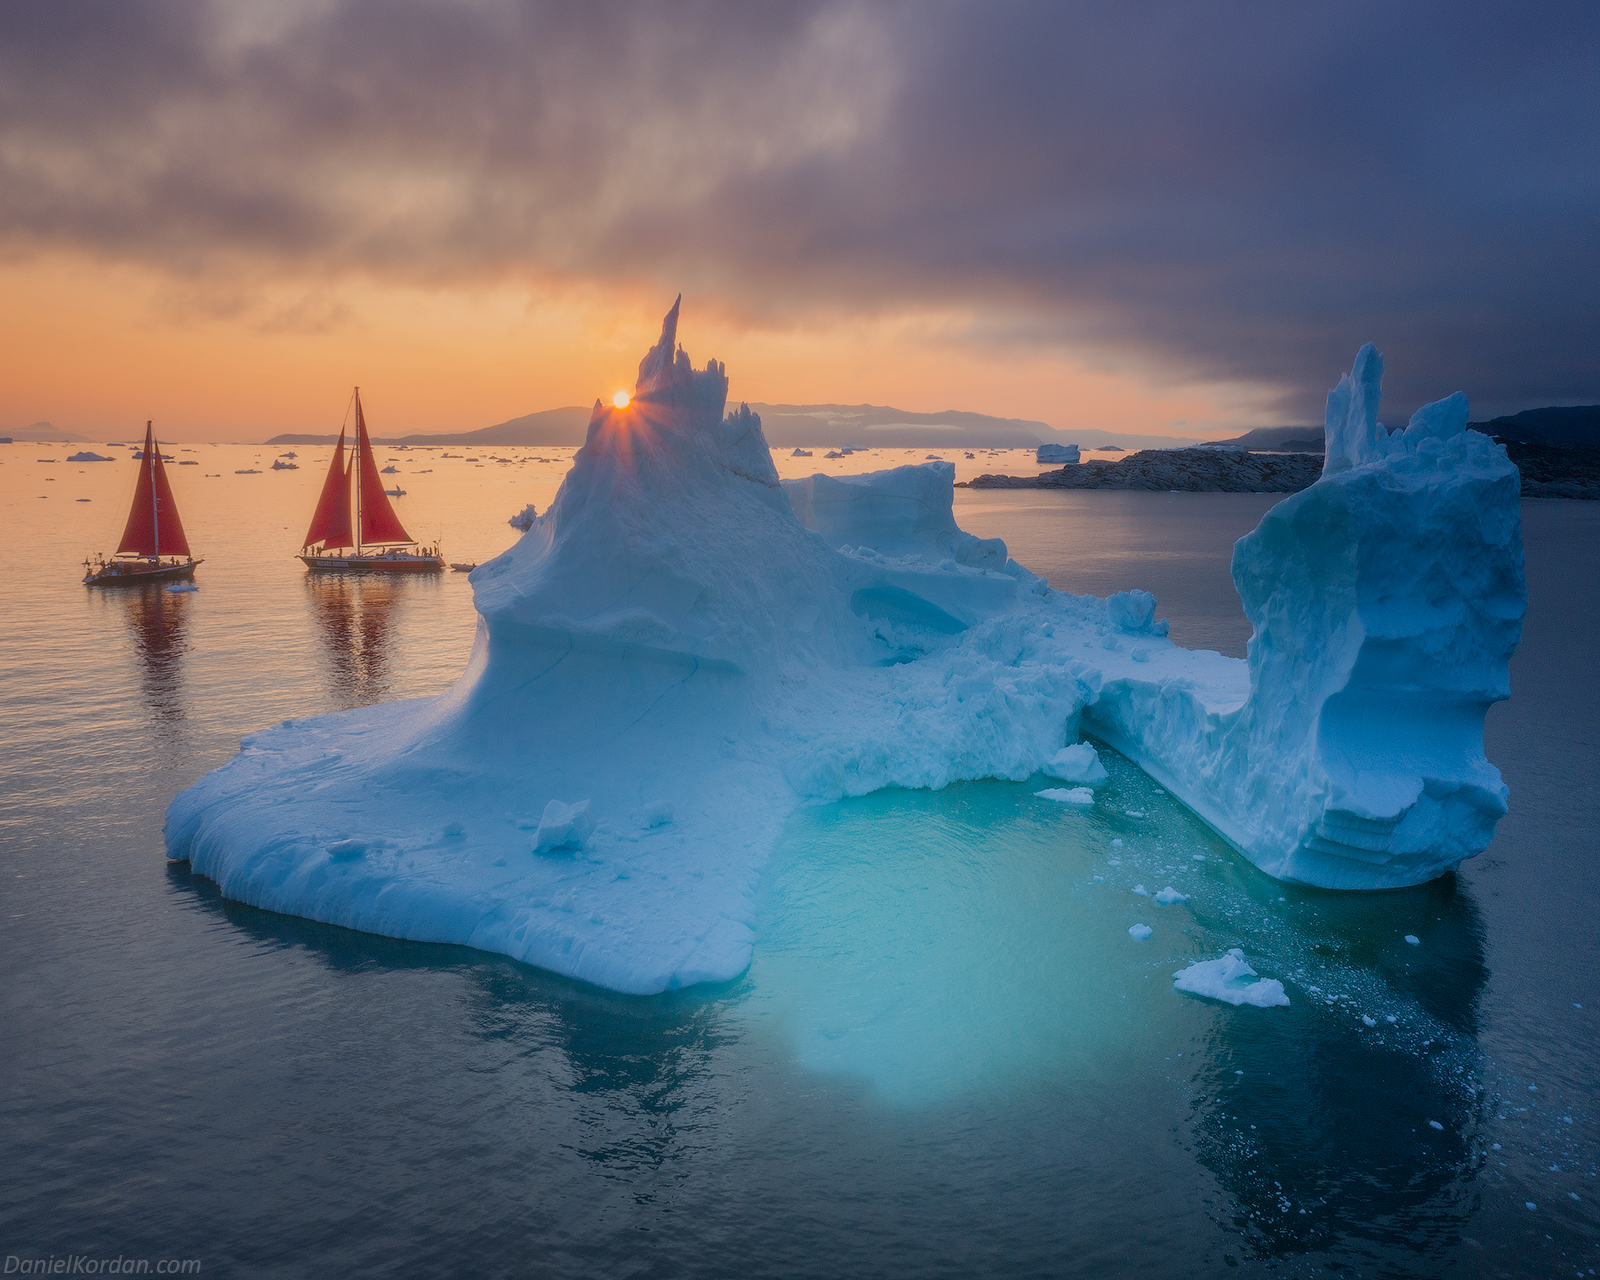 Red Sails in Greenland | Summer Photo Workshop - day 3